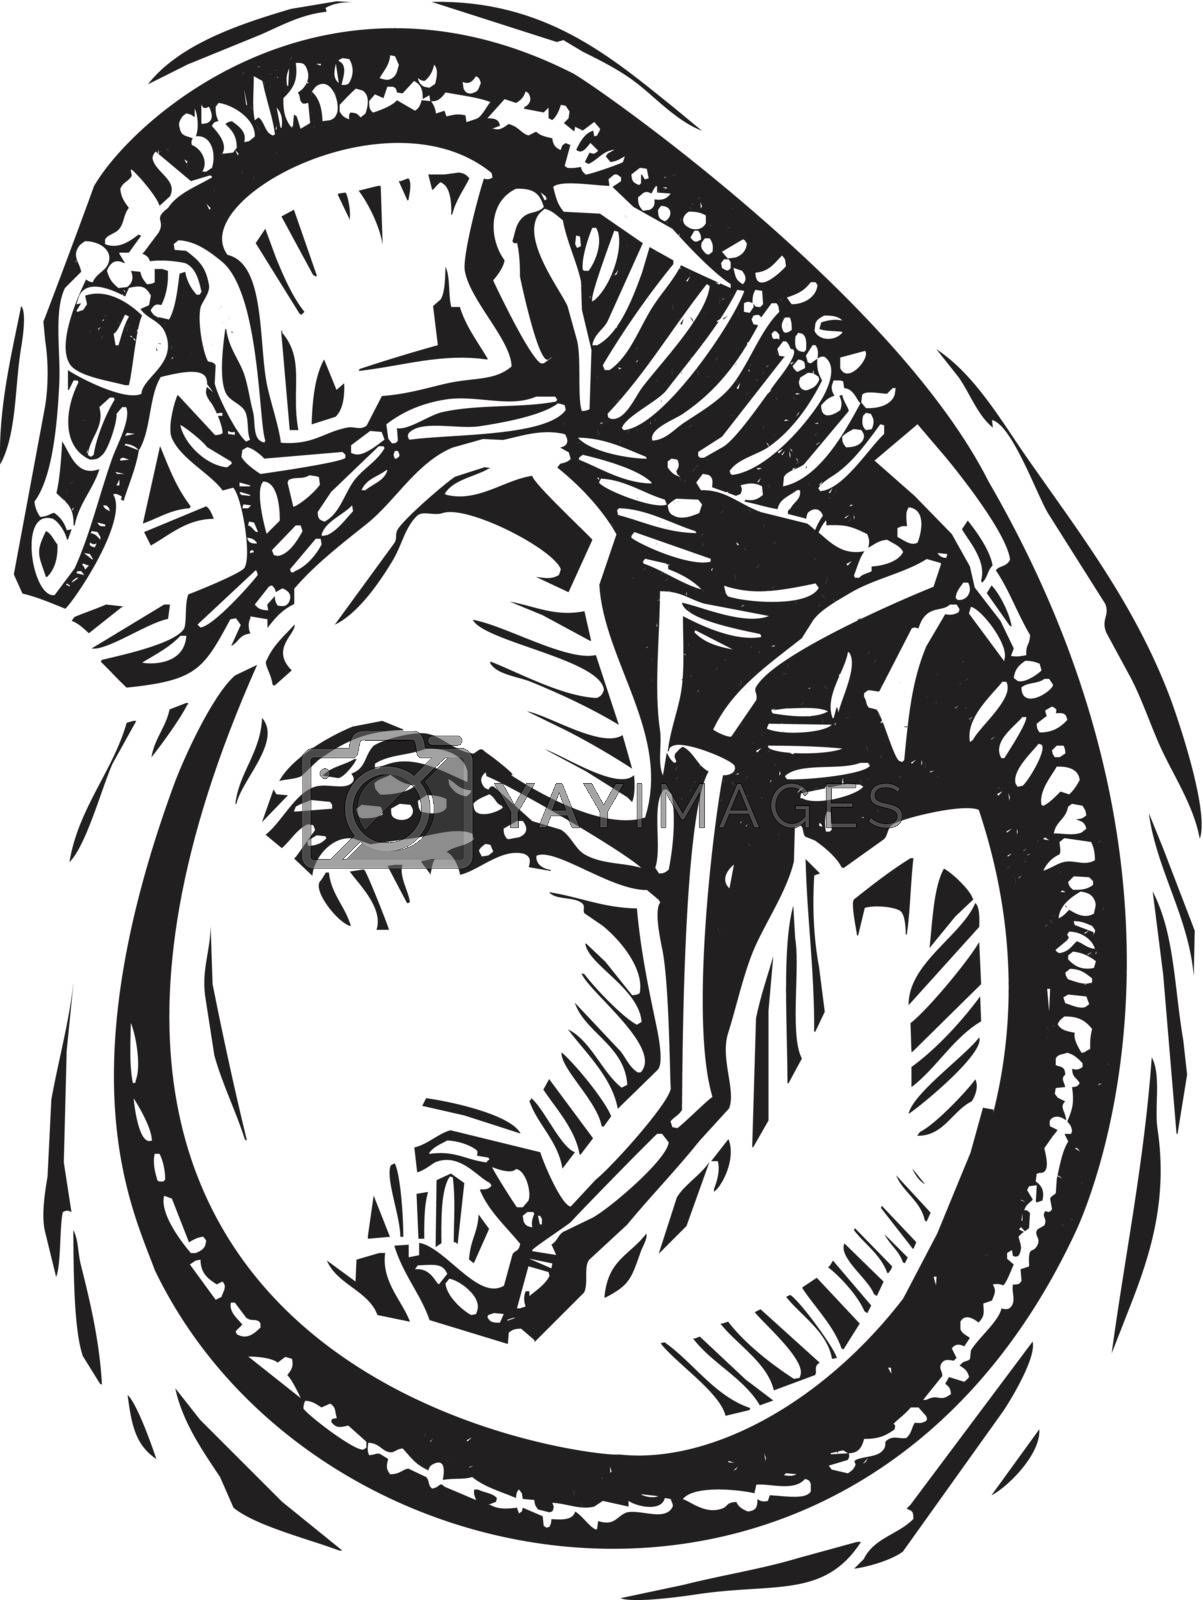 Woodcut style image of a fossil of a curled Velociraptor dinosaur